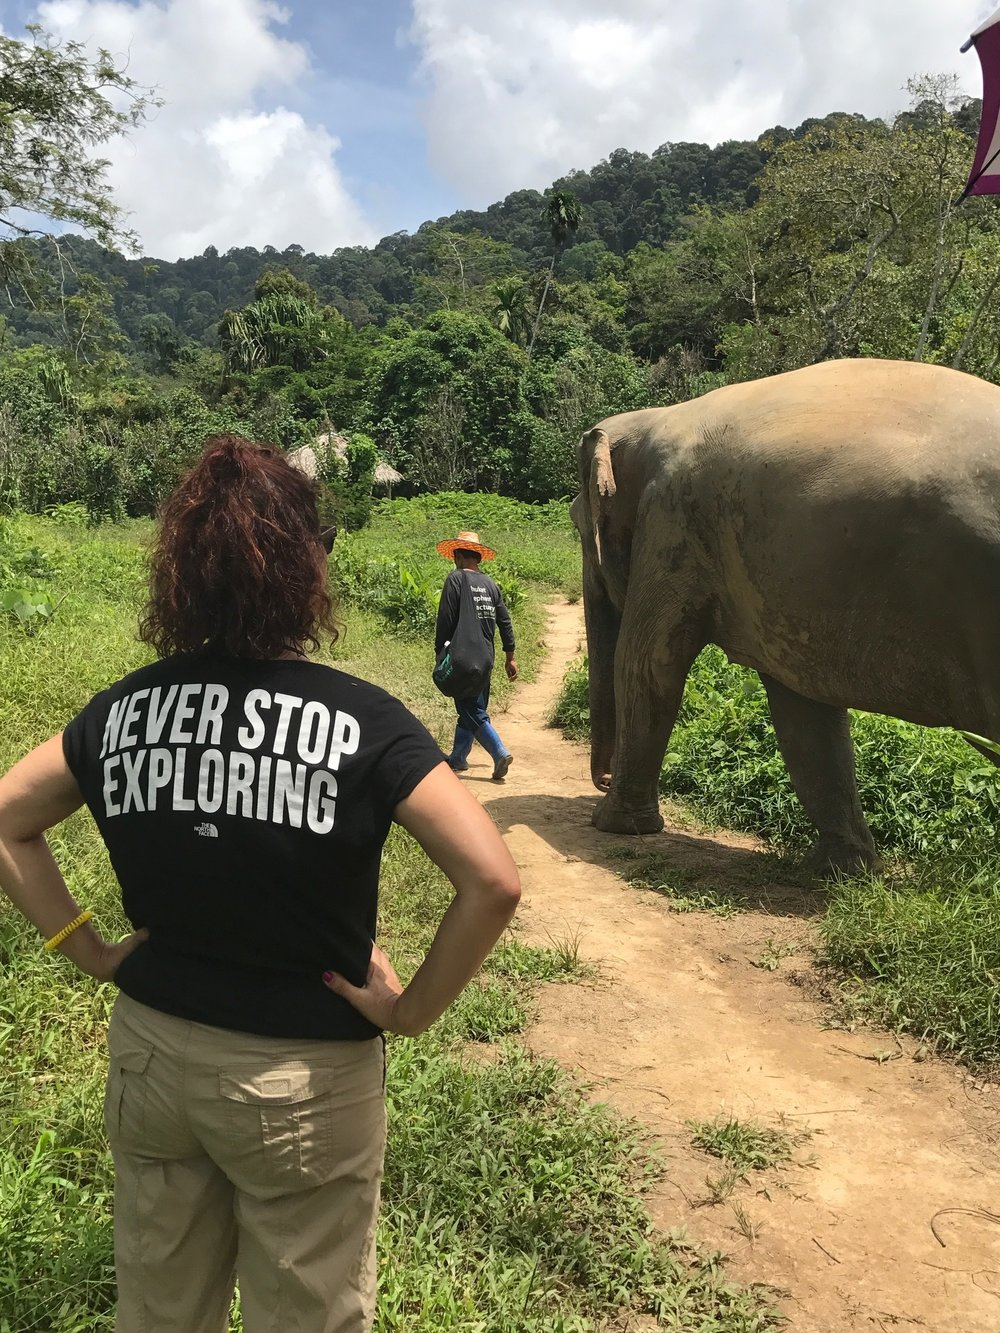 Exploring at the Phuket Elephant Sanctuary - www.stamepdwithaloha.com